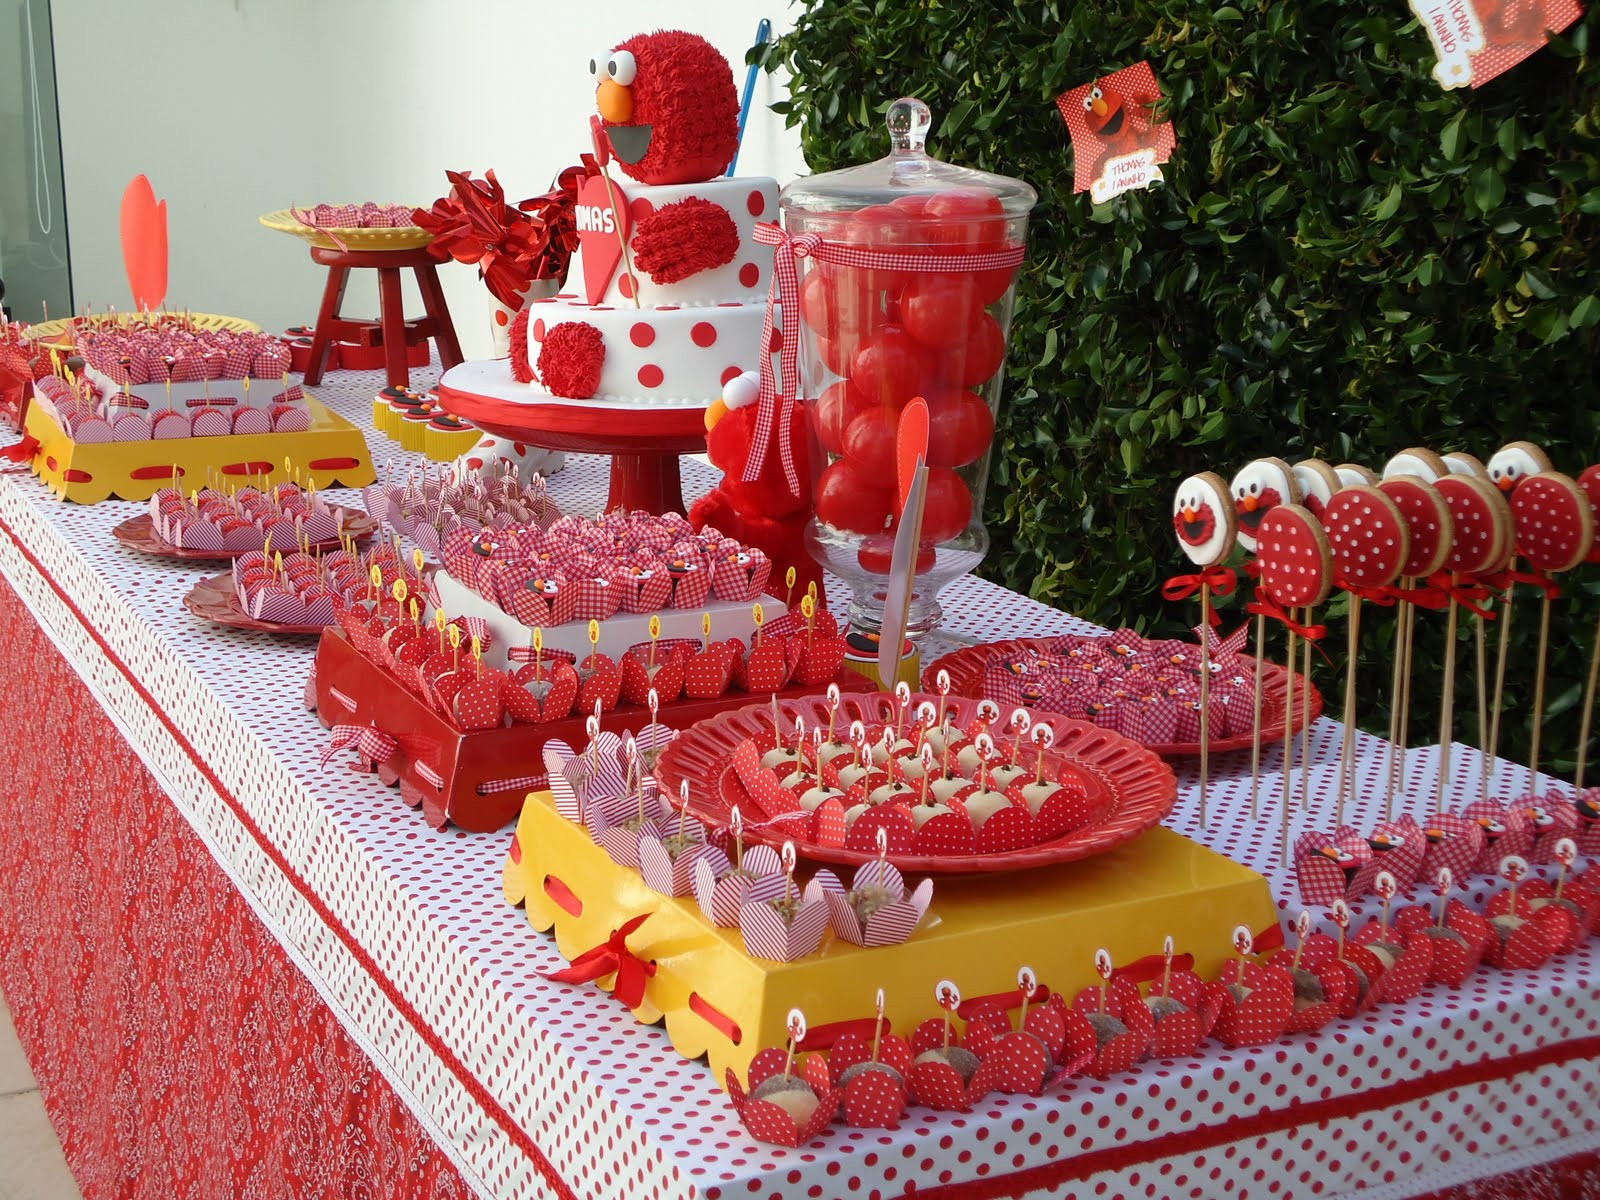 Best ideas about Toddler Birthday Party Ideas . Save or Pin Kids Birthday Party Theme Decoration Ideas Now.